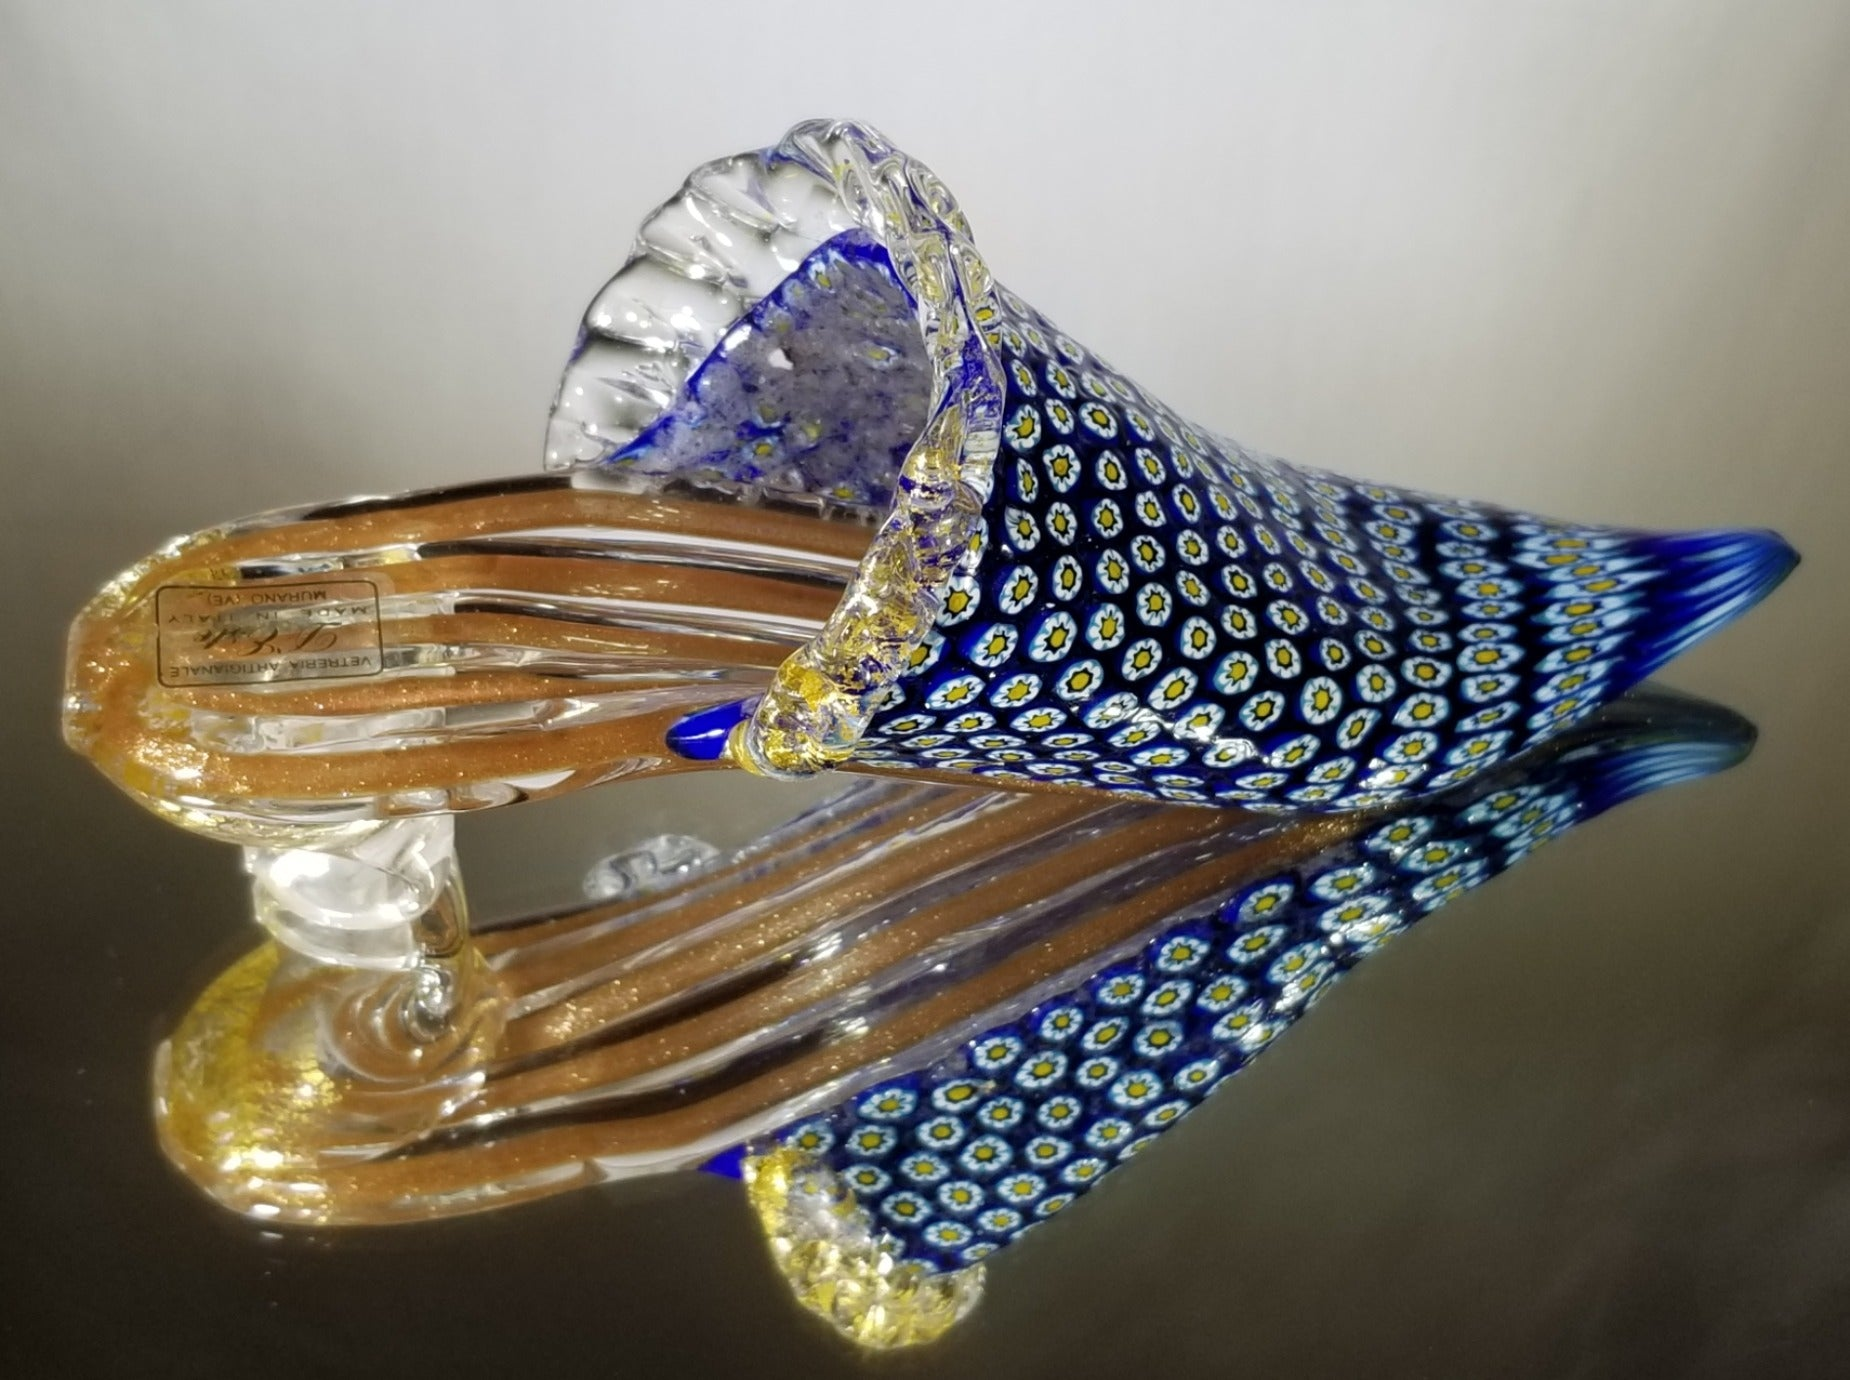 Glass slipper From Murano Italy